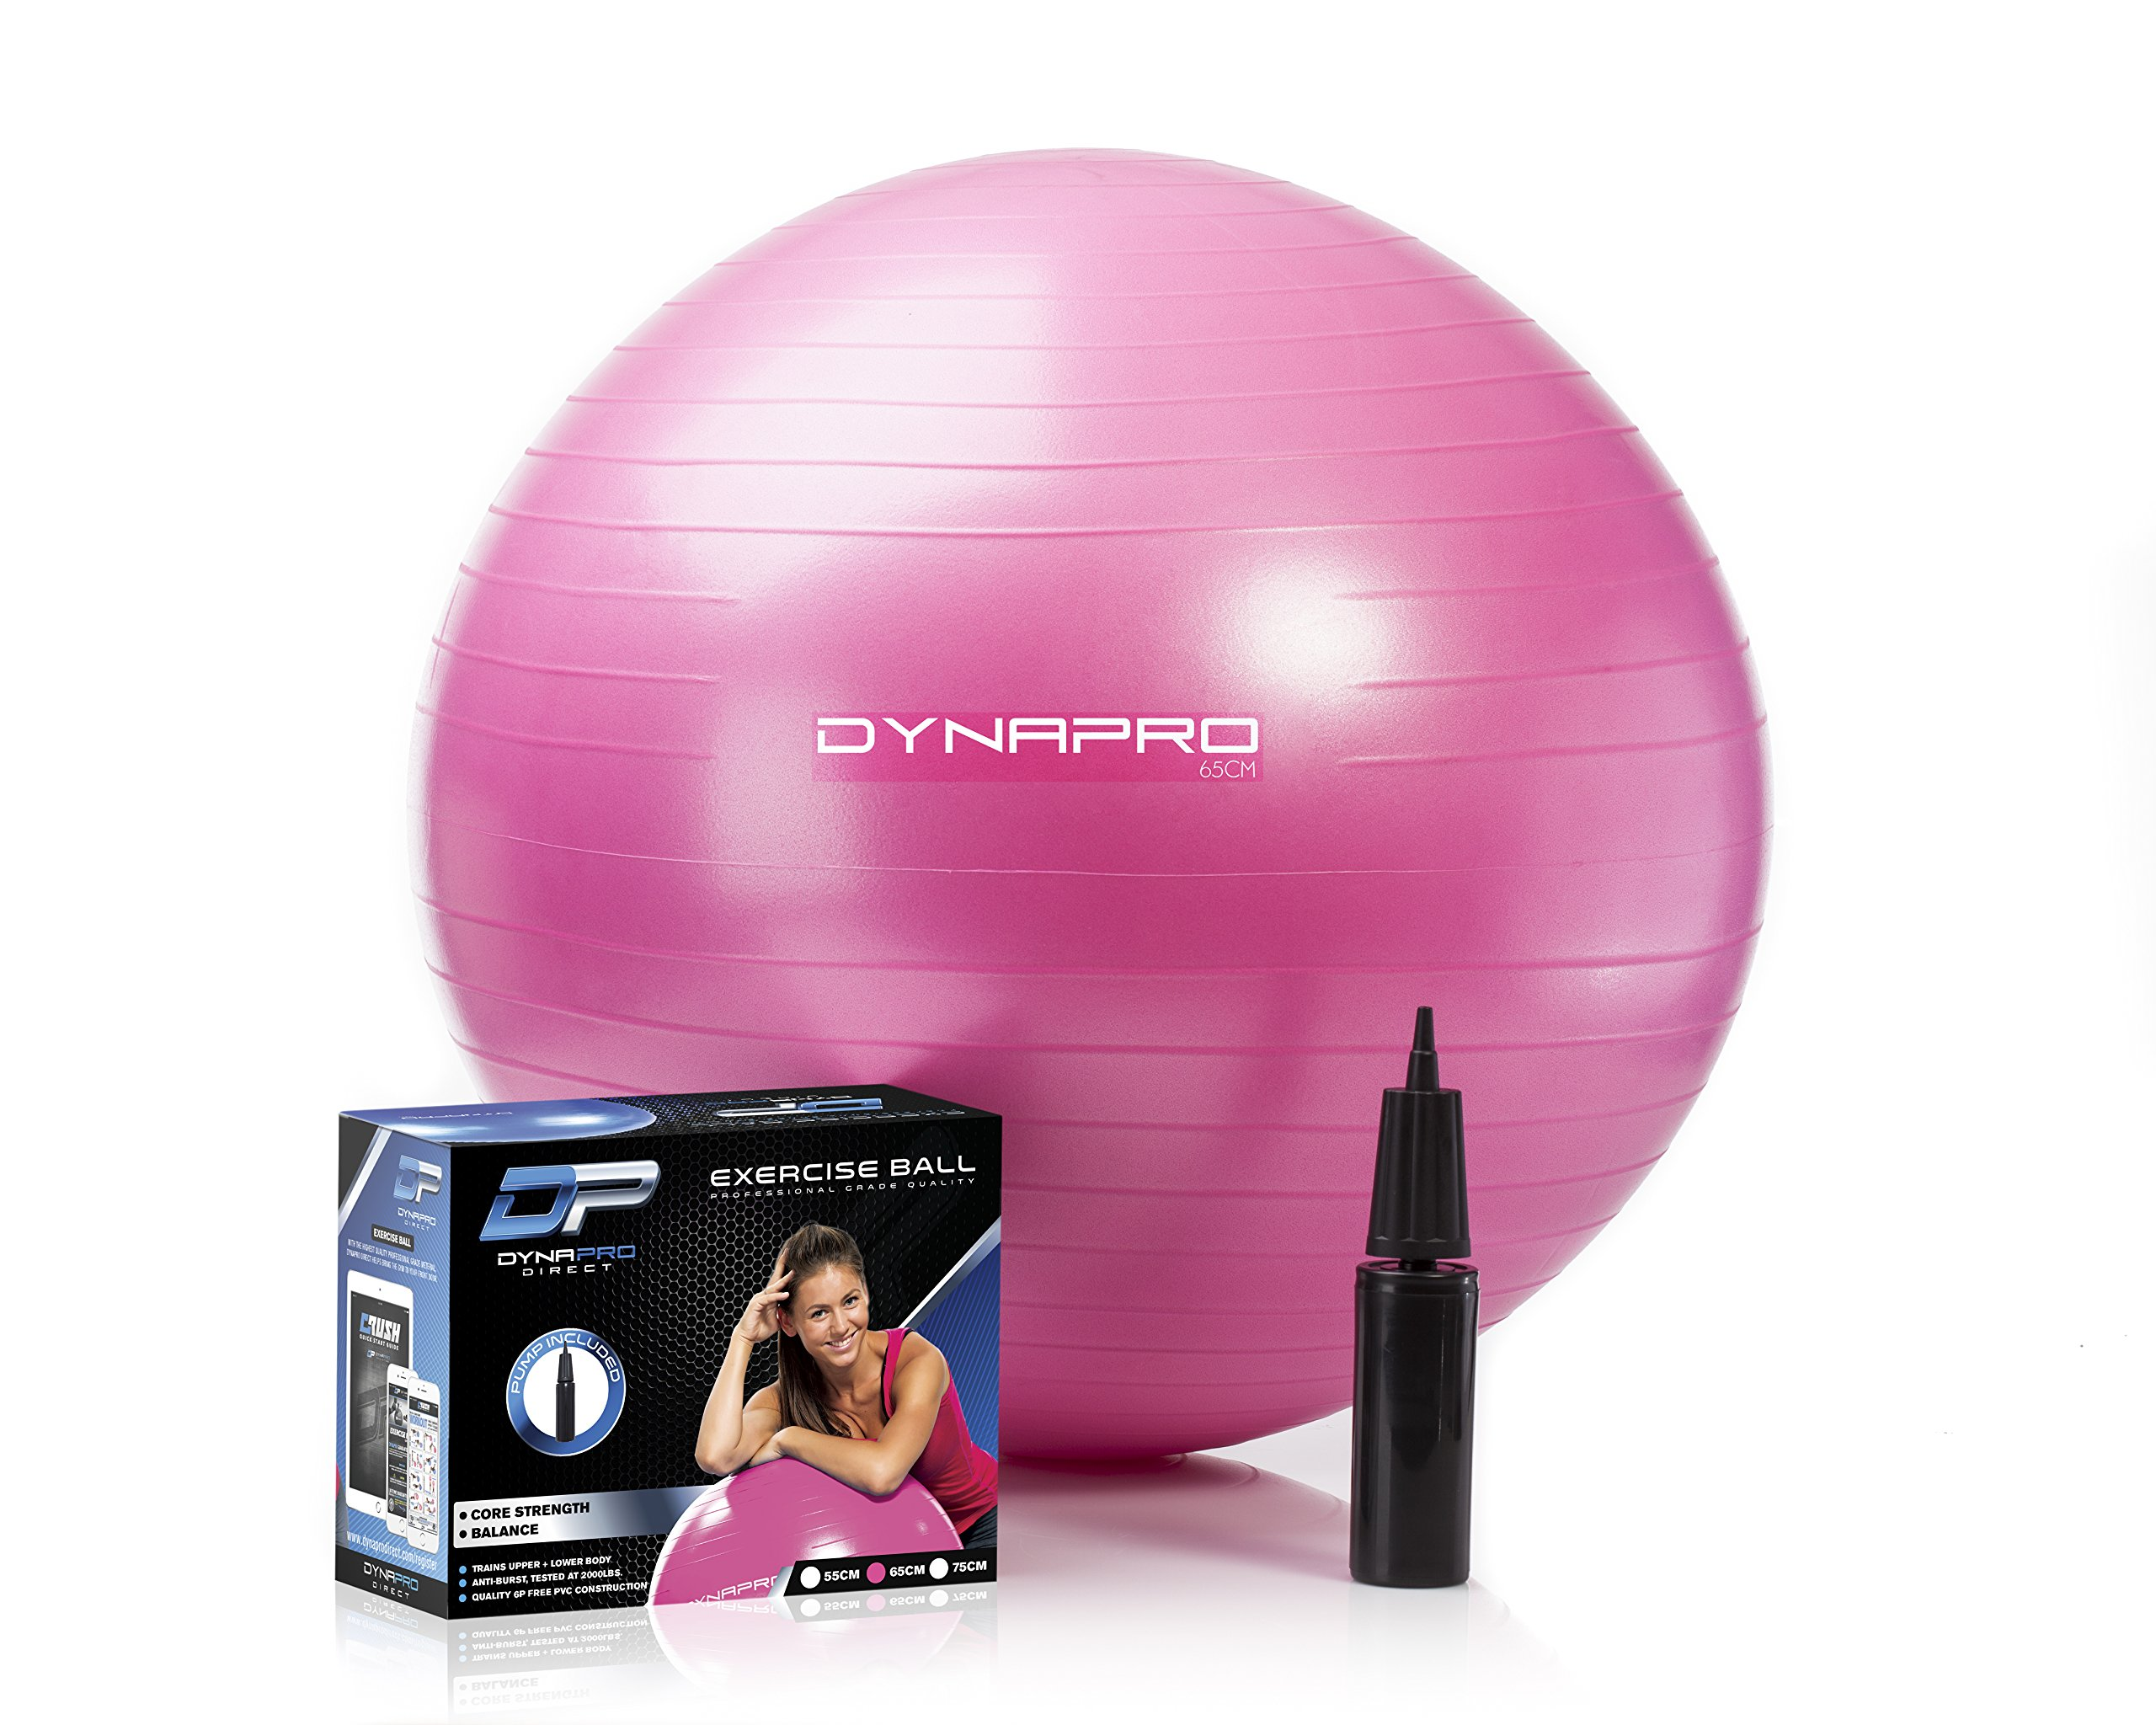 DYNAPRO Exercise Ball - 2,000 lbs Stability Ball - Professional Grade – Anti Burst Exercise Equipment for Home, Balance, Gym, Core Strength, Yoga, Fitness, Desk Chairs (Pink, 65 Centimeters) by DYNAPRO (Image #2)